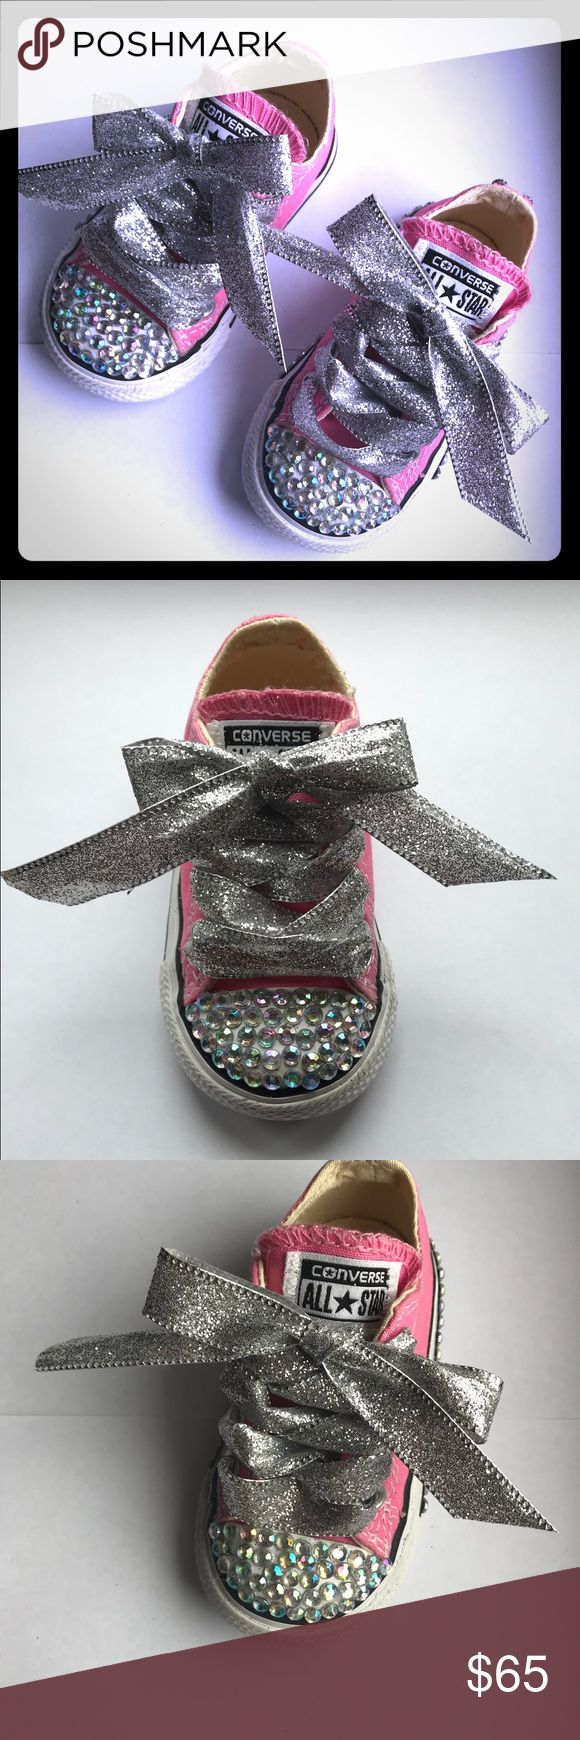 """Converse Bling Toddler Size 4 🎀 Adorable handmade custom Converse Toddler size 4. Blinged our with Approximately 200 stones. They are 5mm AB Stones. These are in EUC. They look as if they were never worn. The footbeds are pristine. The Converse logo on the back has no signs of wear. The shoes measure 5.5""""   These would be great for smash cake photos, family photos, or just to wear out and about. 🎀 Converse Shoes Sneakers"""